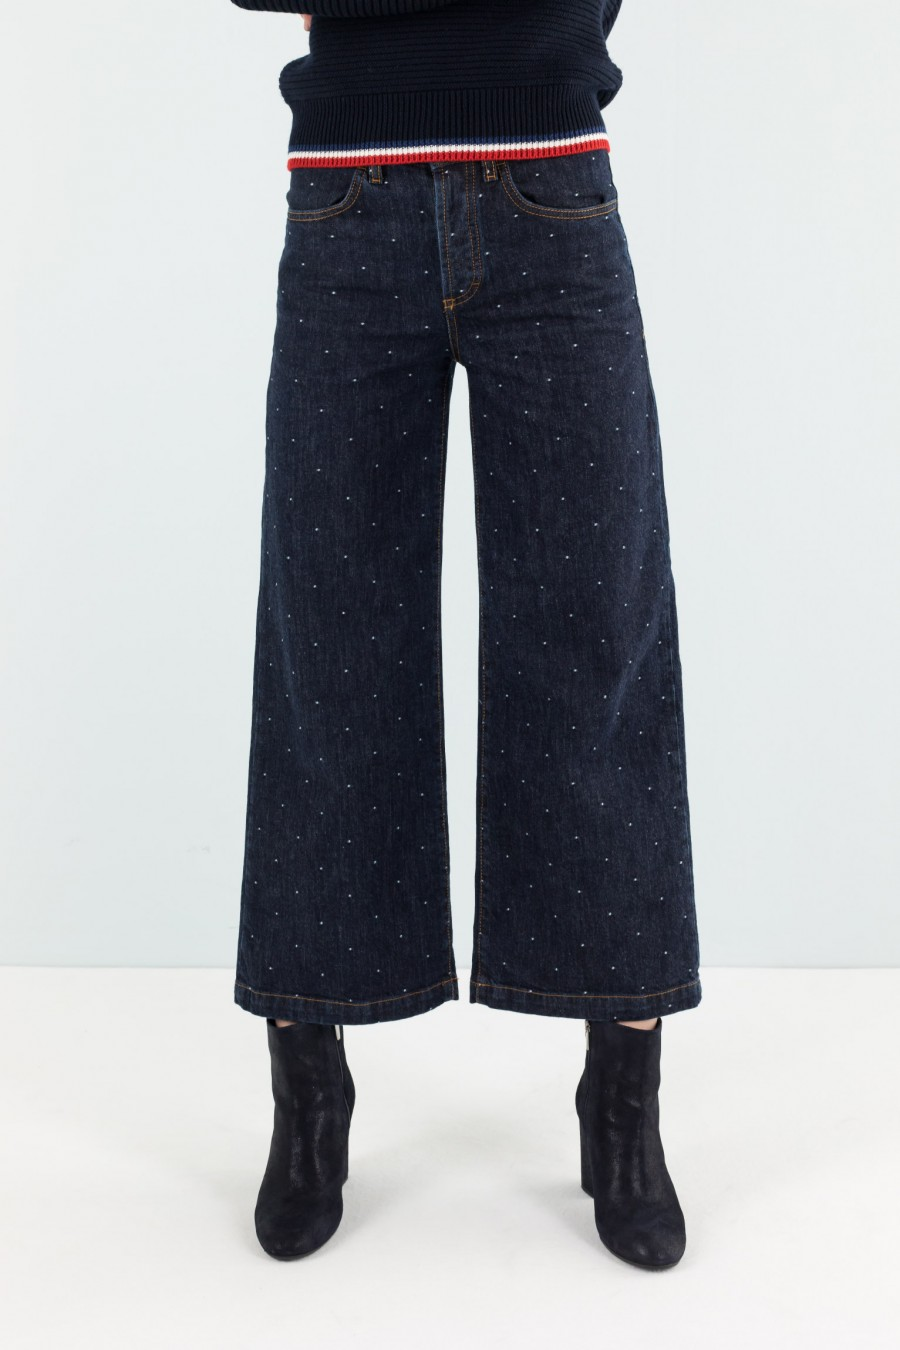 polka dots jacquard denim